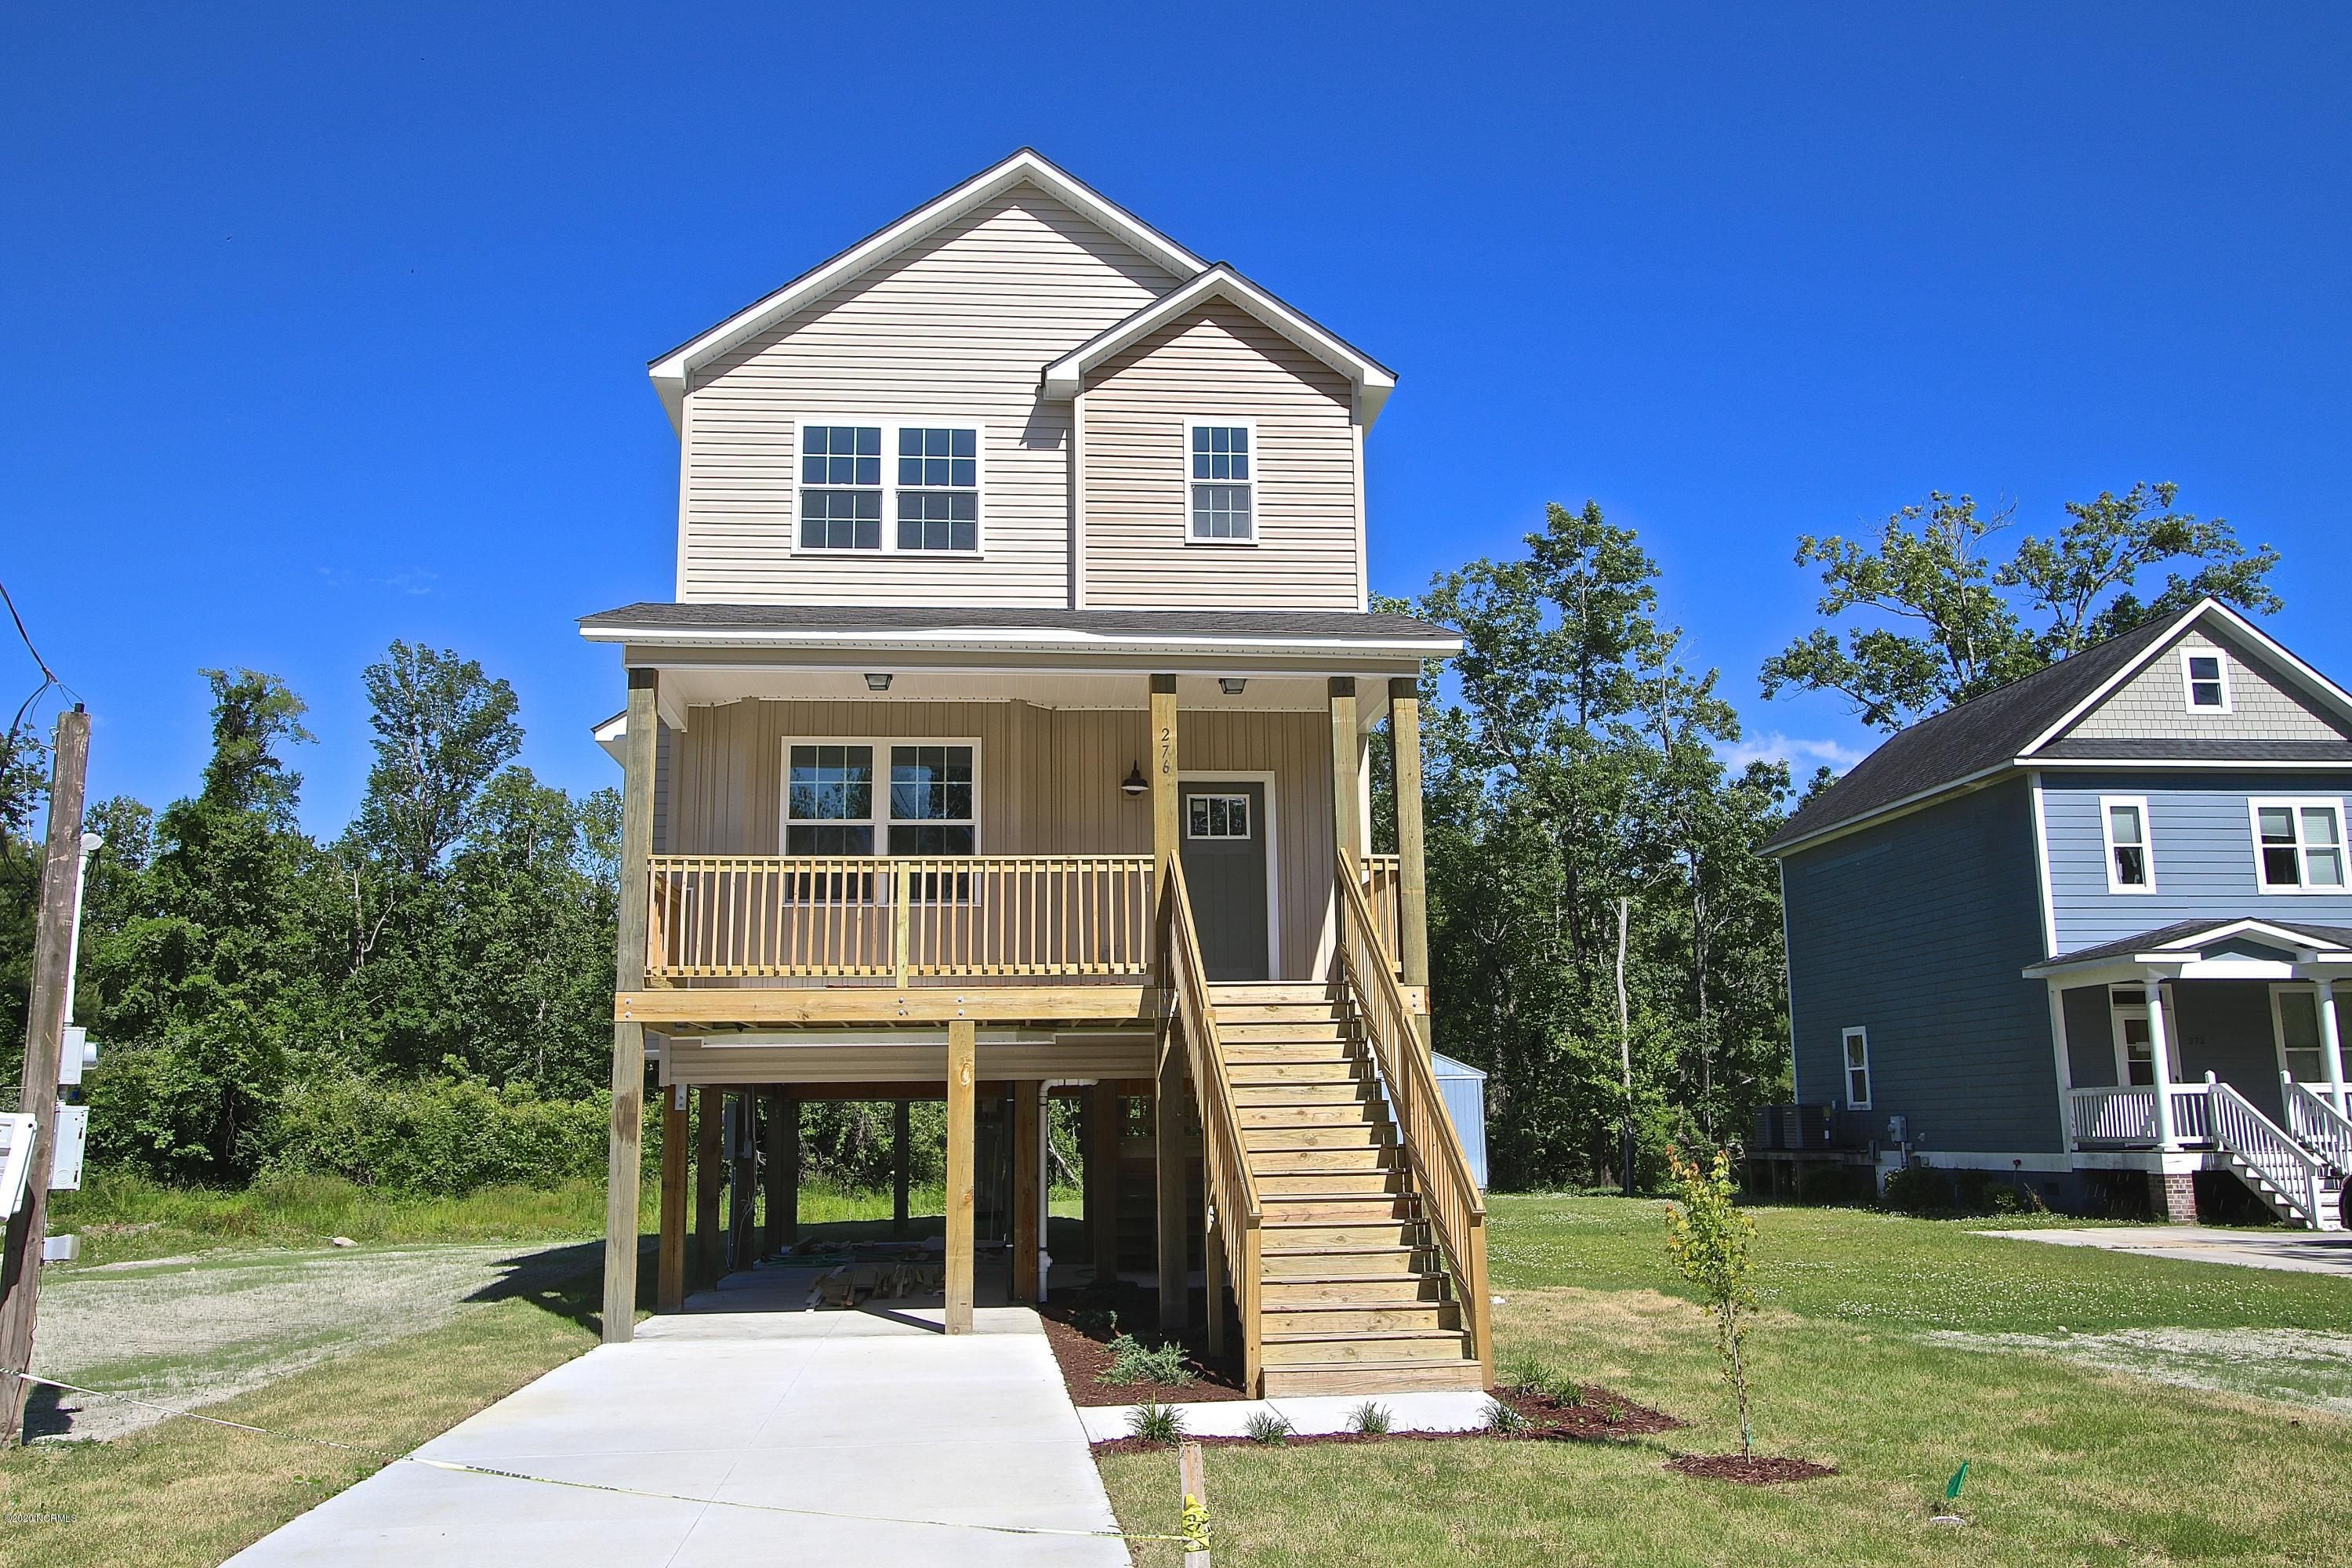 276 Ford Street, Jacksonville, North Carolina 28540, 3 Bedrooms Bedrooms, ,2 BathroomsBathrooms,Residential,For Sale,Ford,100182470